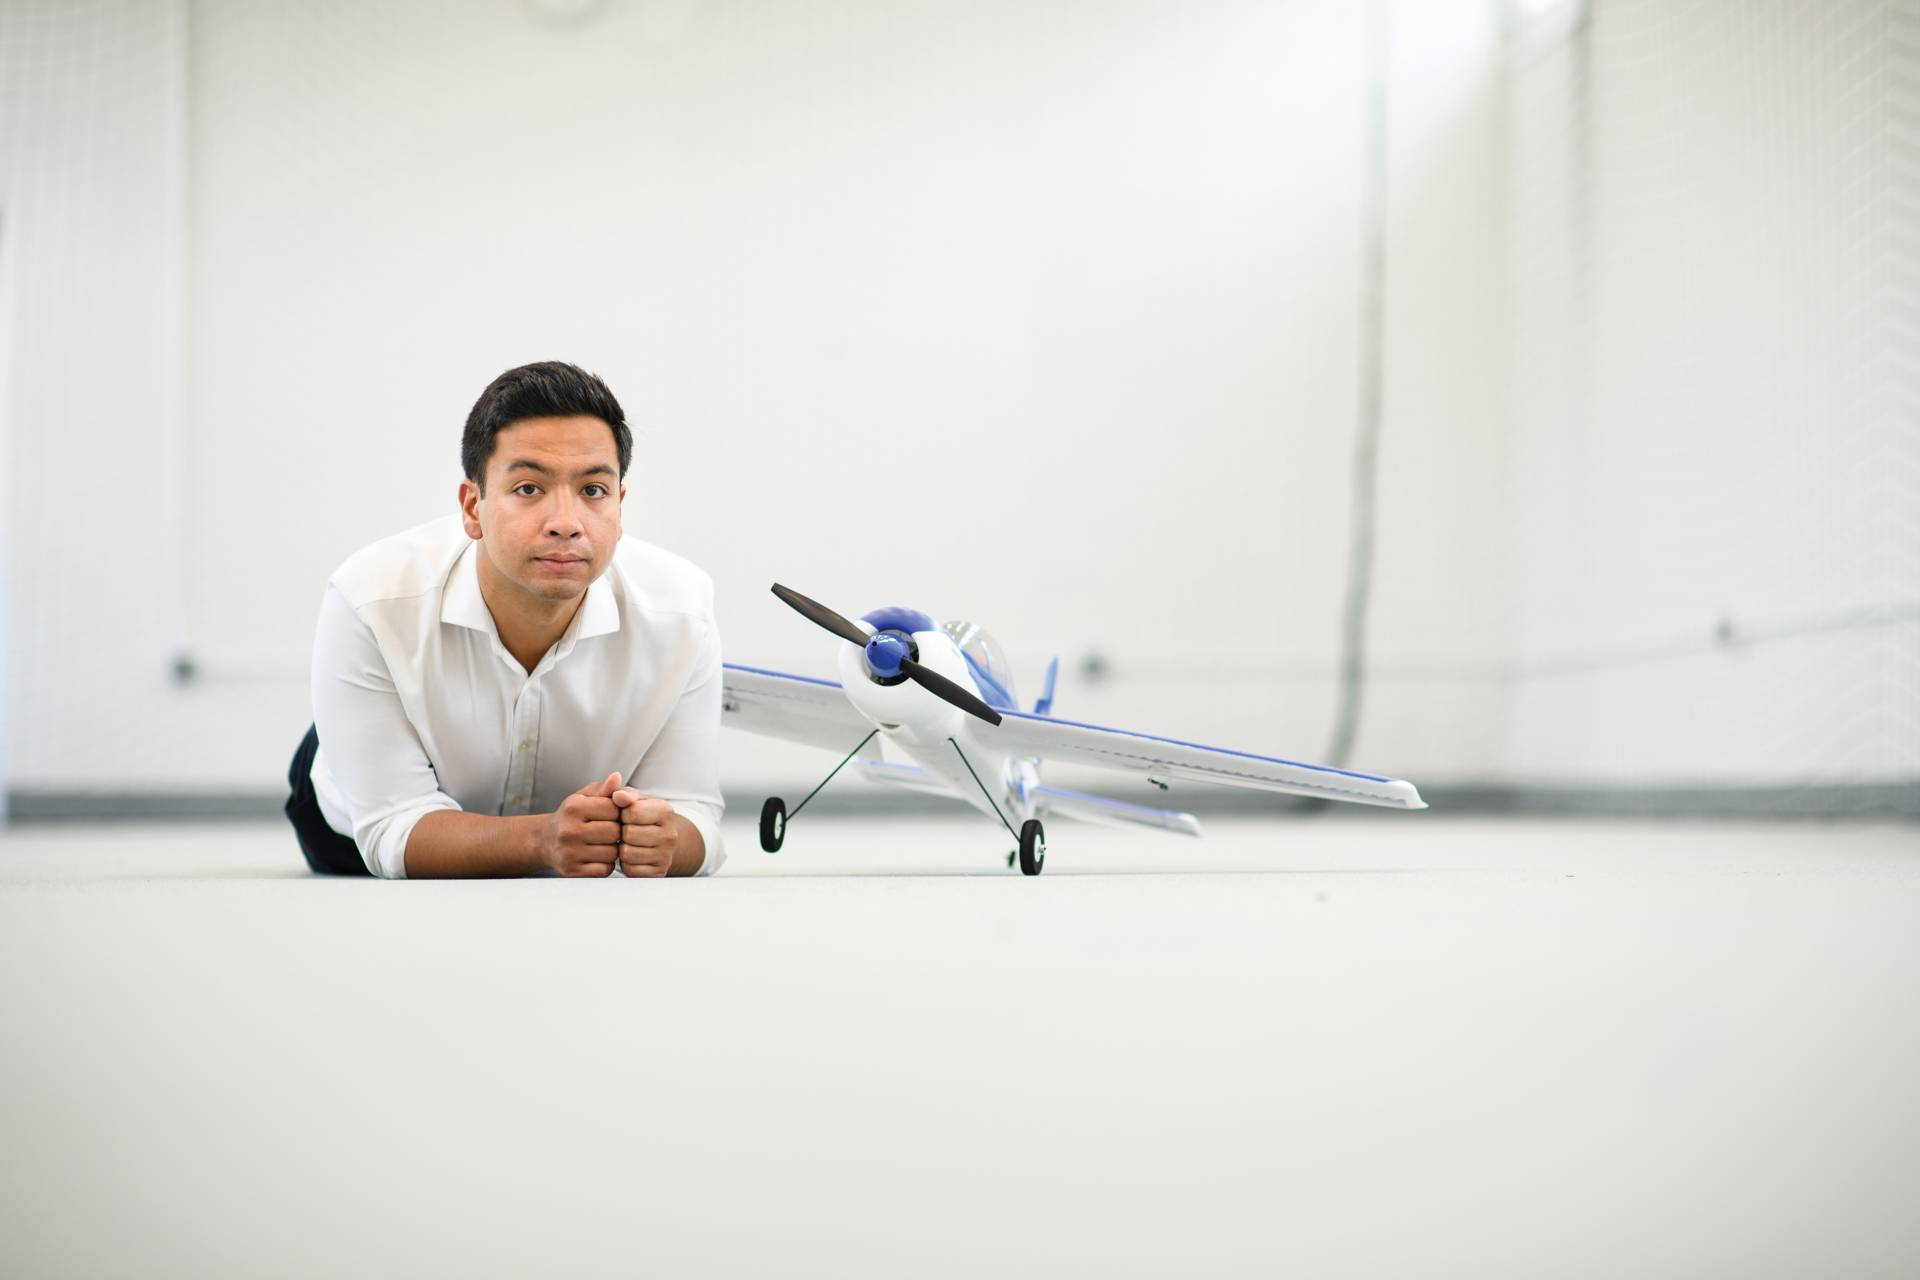 Anirudha Majumdar with a drone airplane